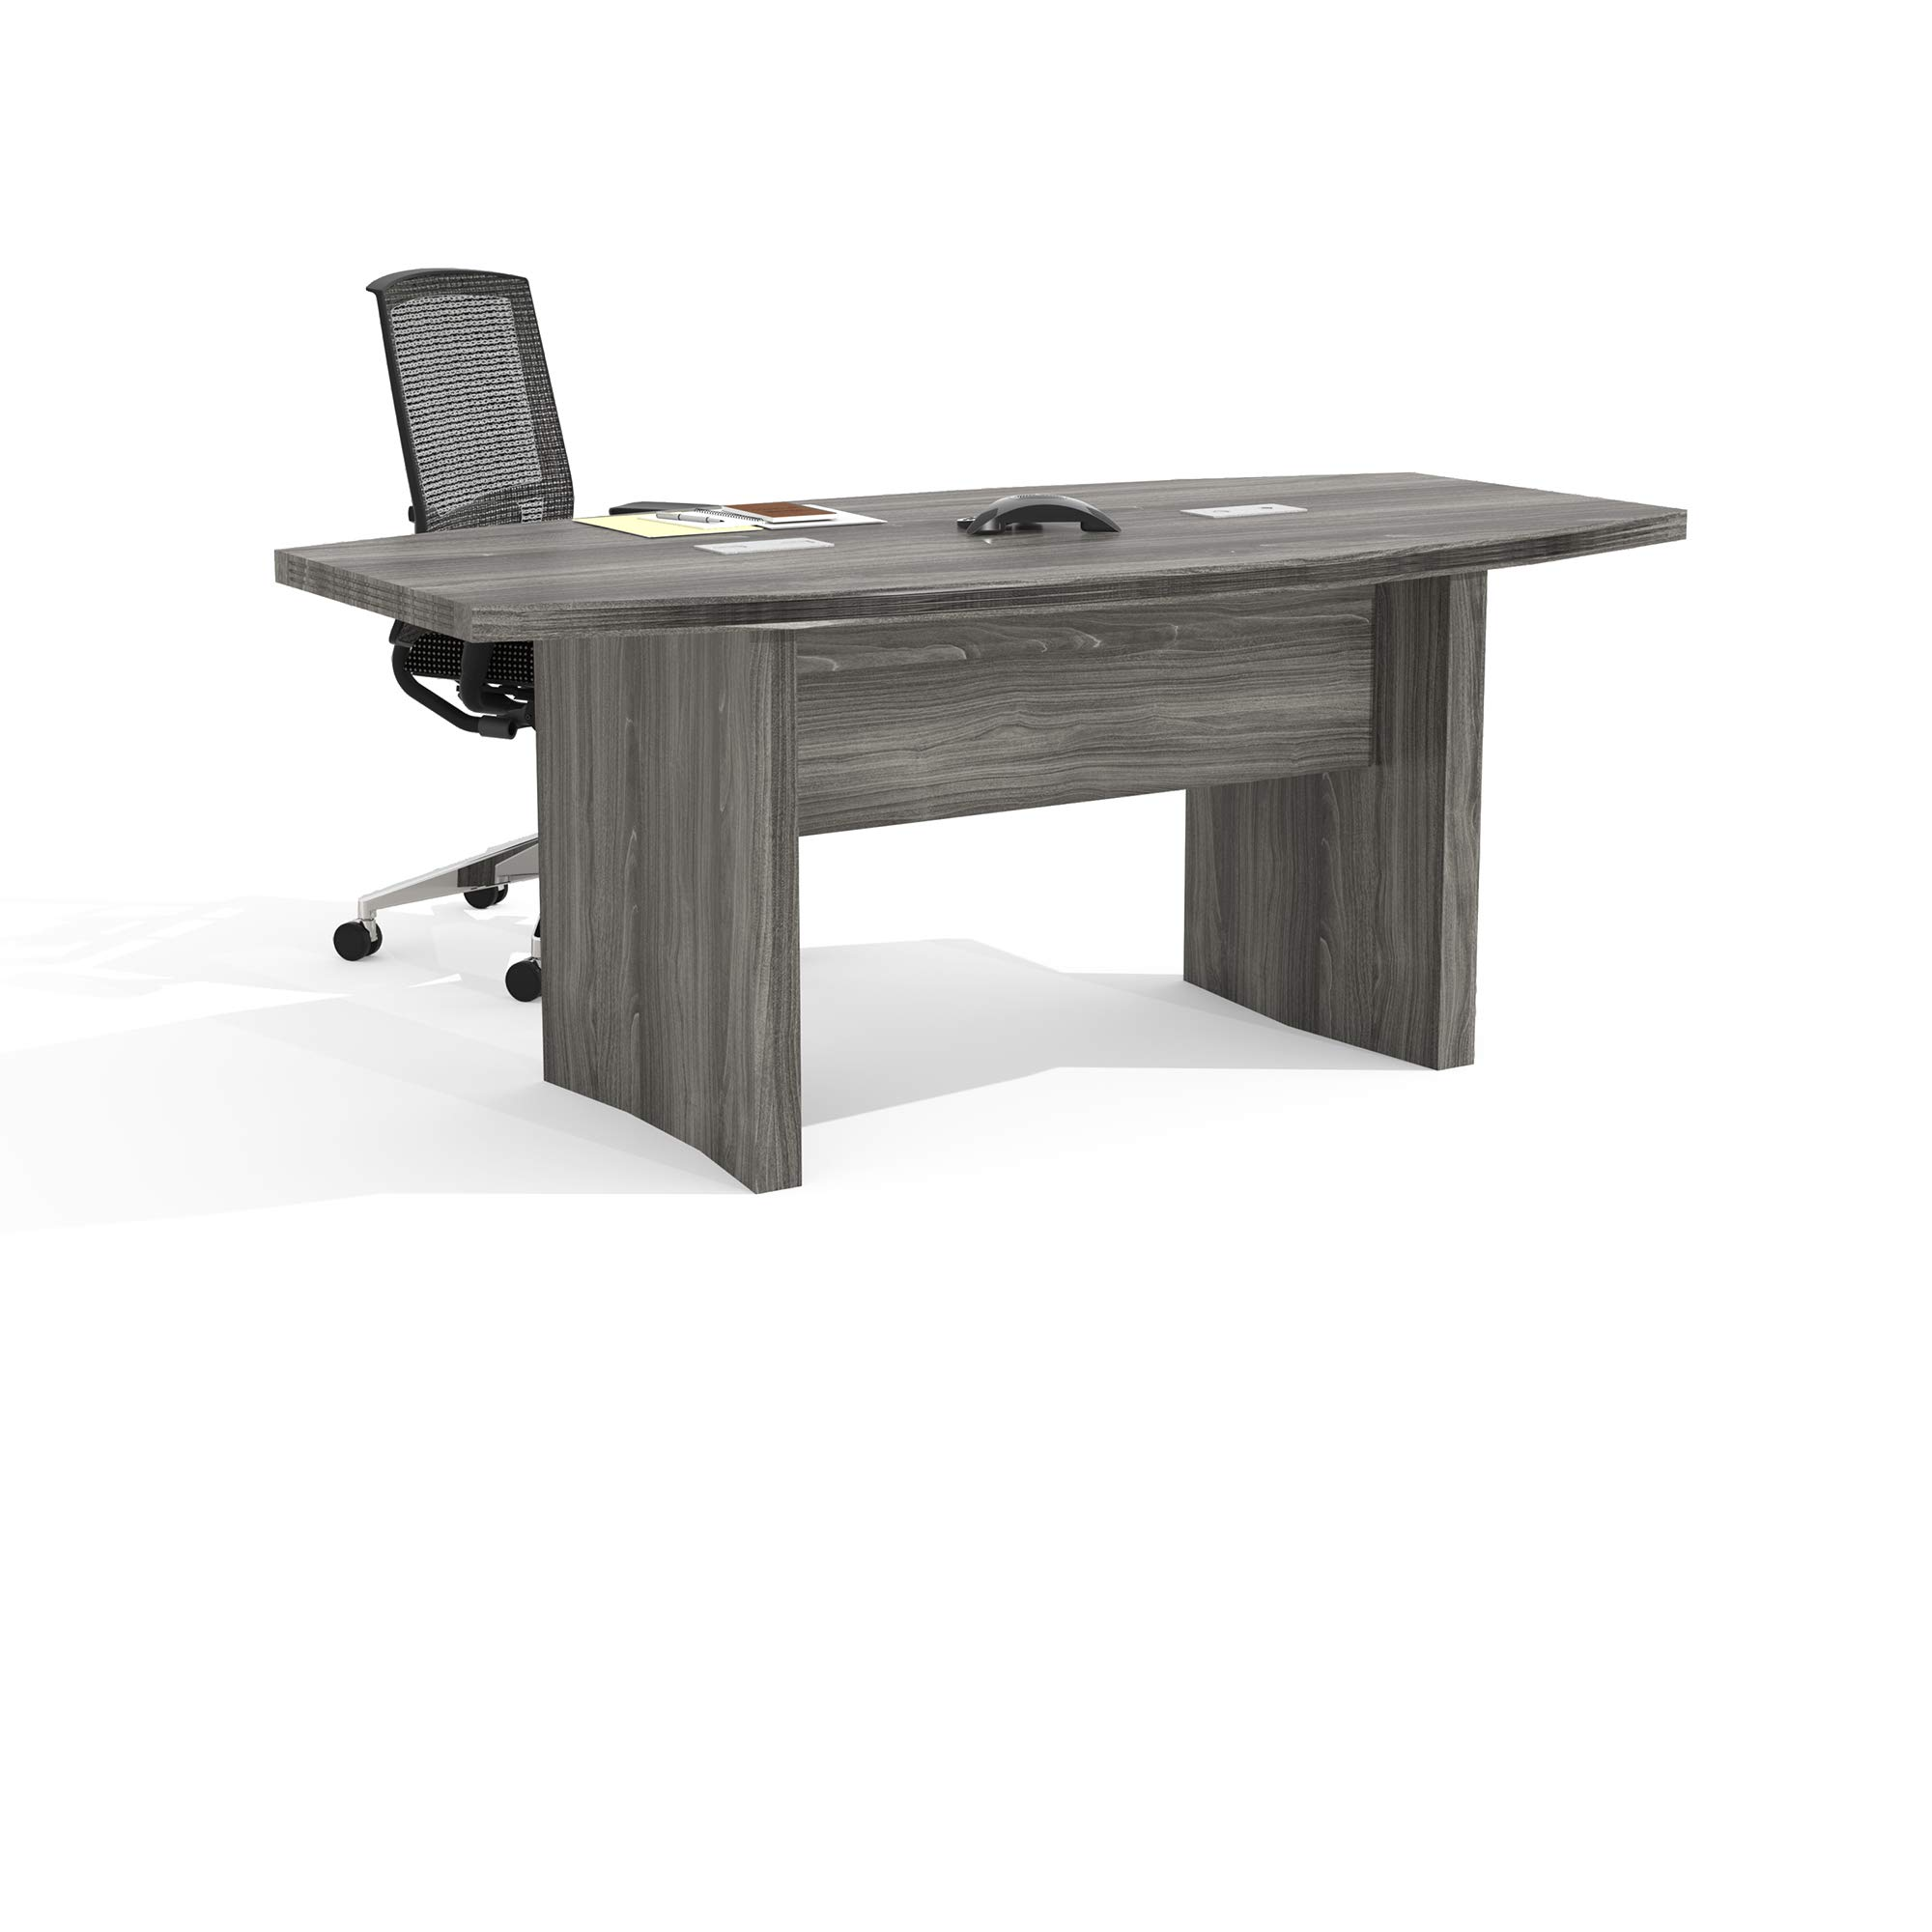 Mayline ACTB6LGS Aberdeen 6' Boat Shape Conference Table, Gray Steel Tf by Safco Products (Image #2)